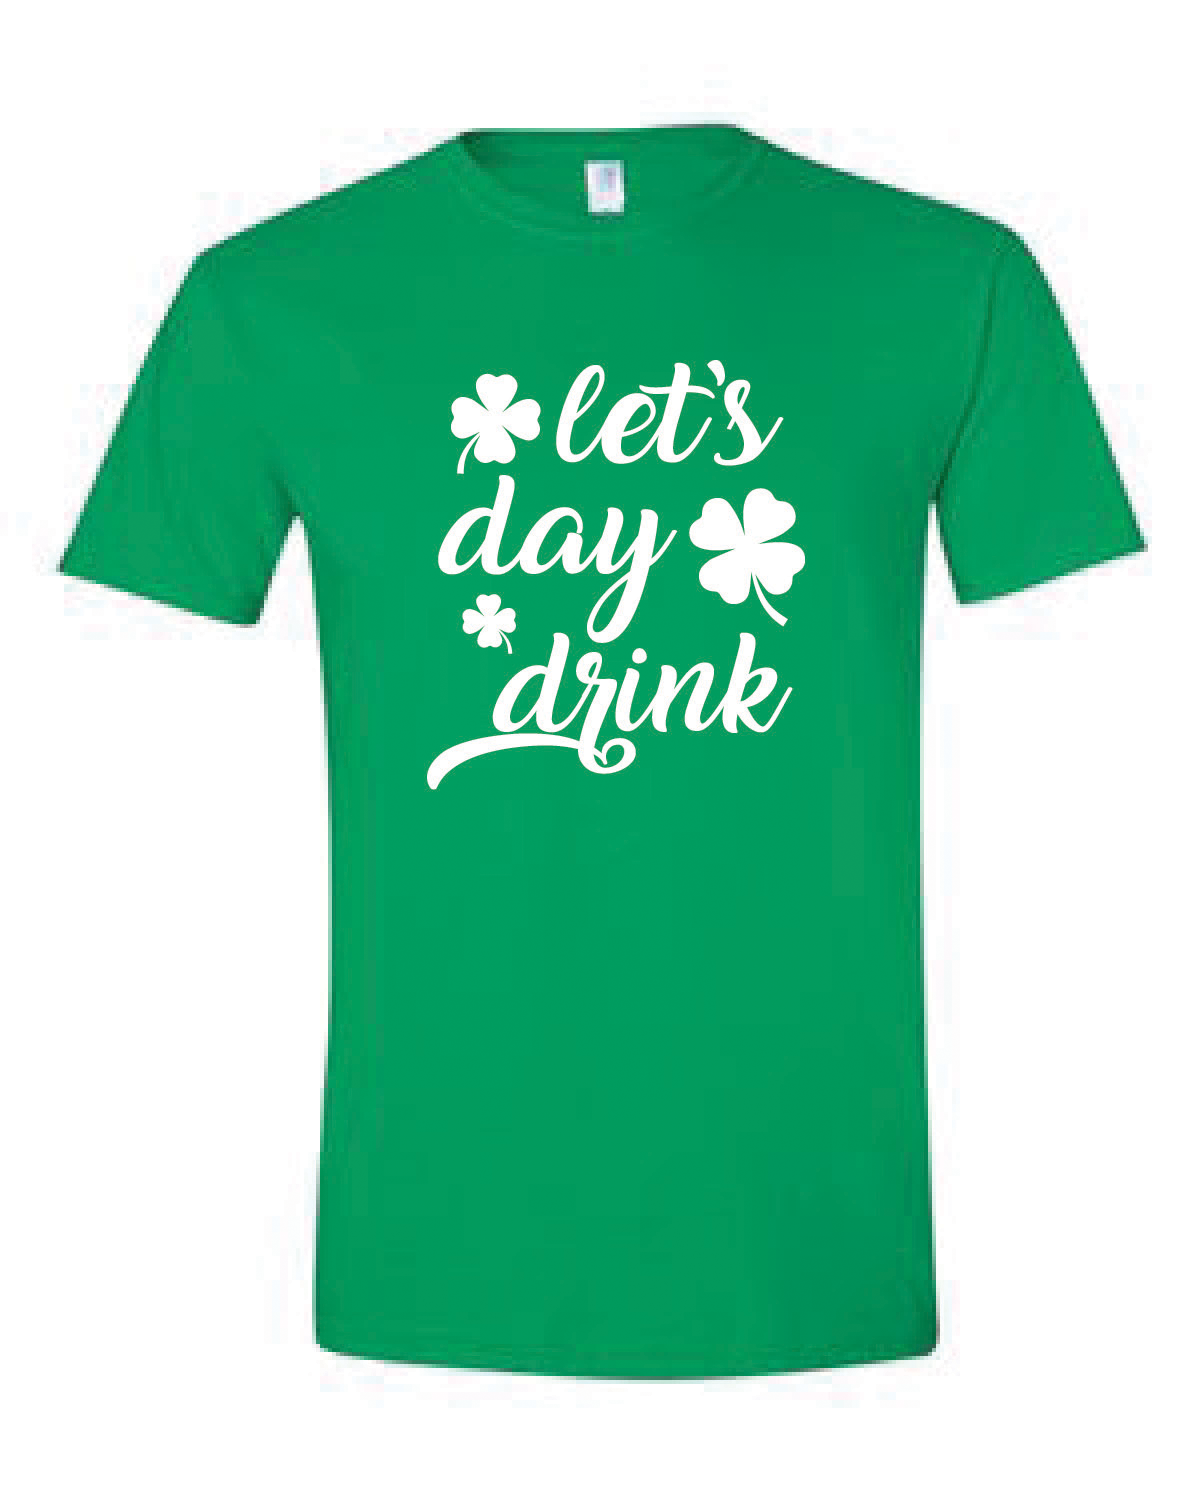 Short Sleeve Softstyle Tee (LET'S DAY DRINK)